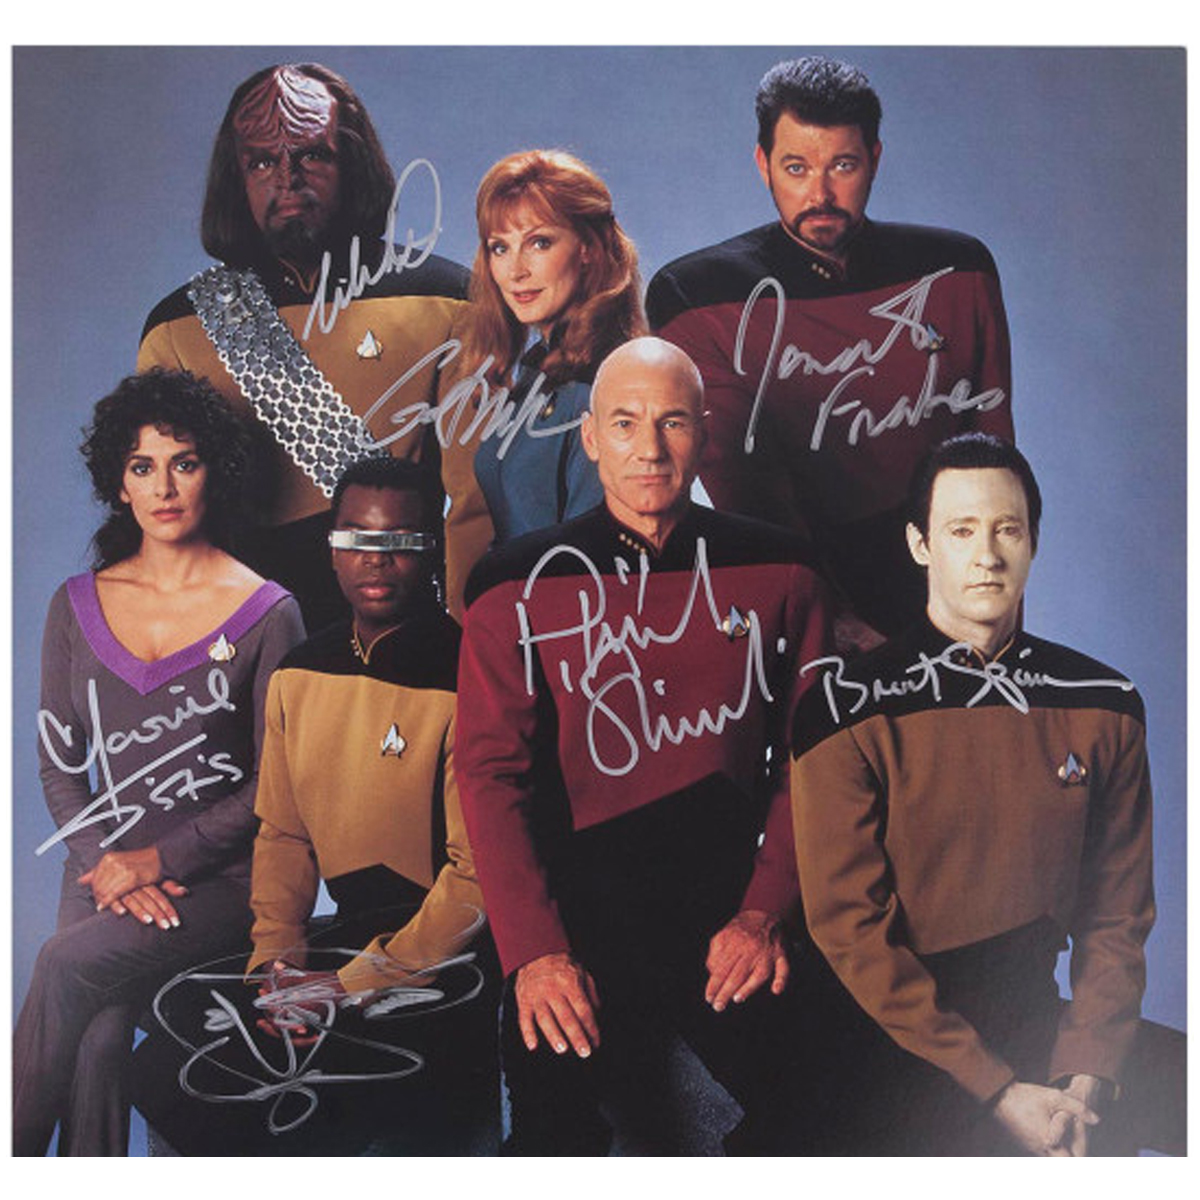 Star Trek The Next Generation Crew Shots [16x20]